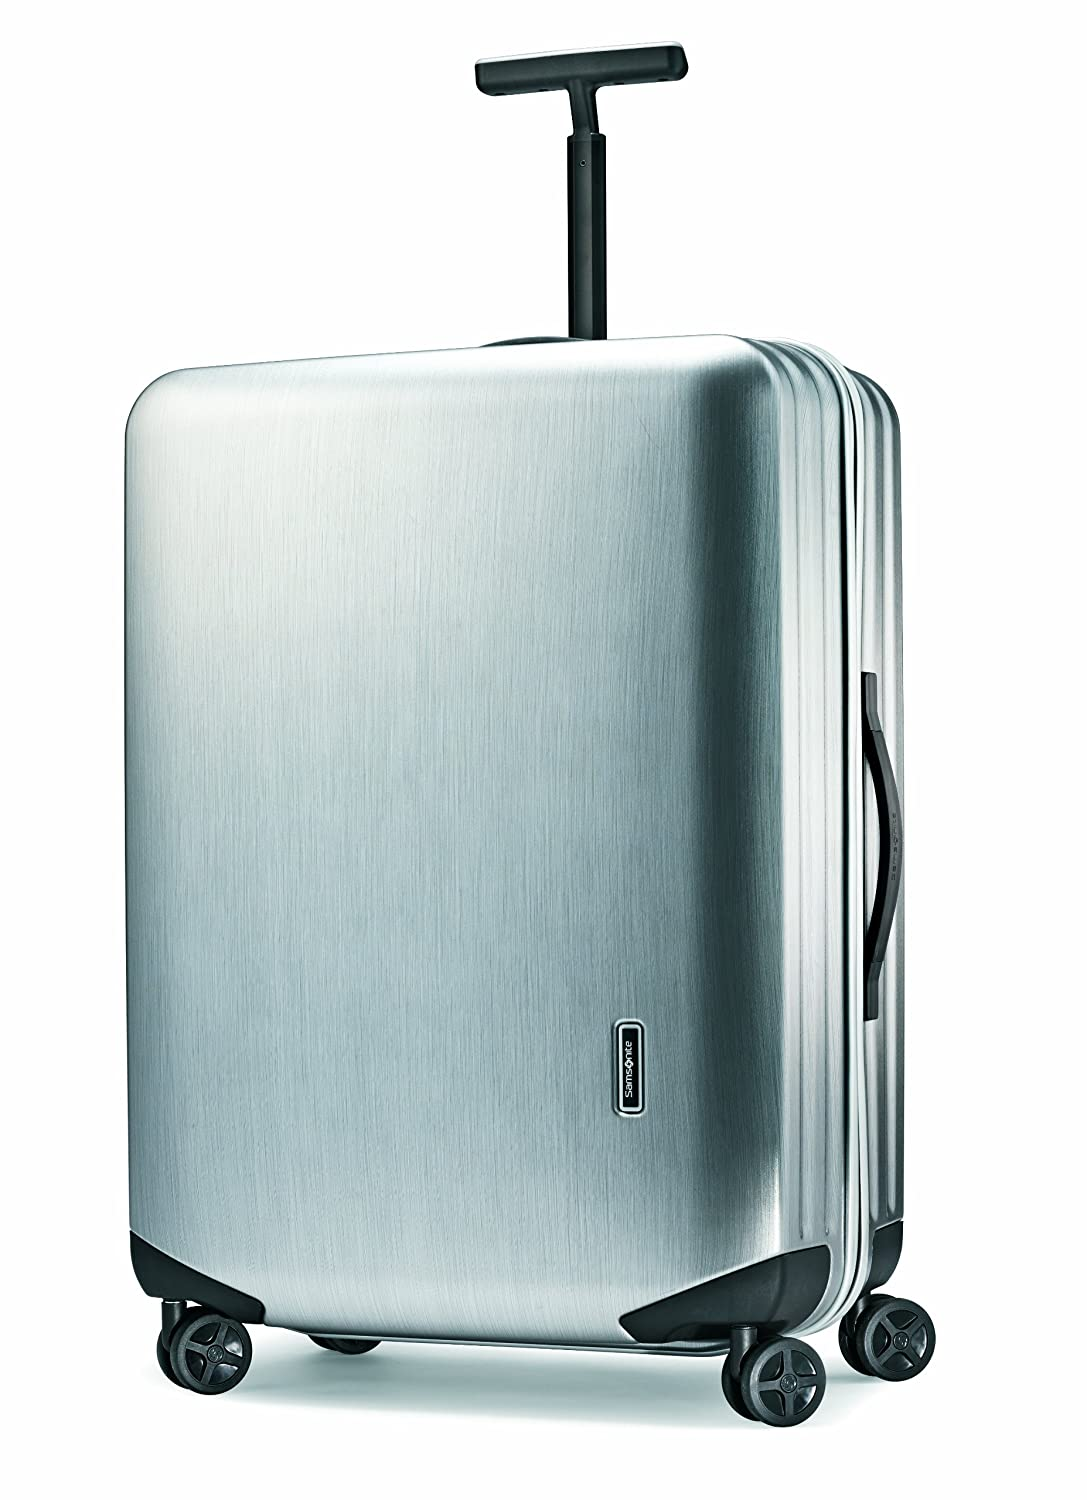 Samsonite Luggage Inova Spinner 28